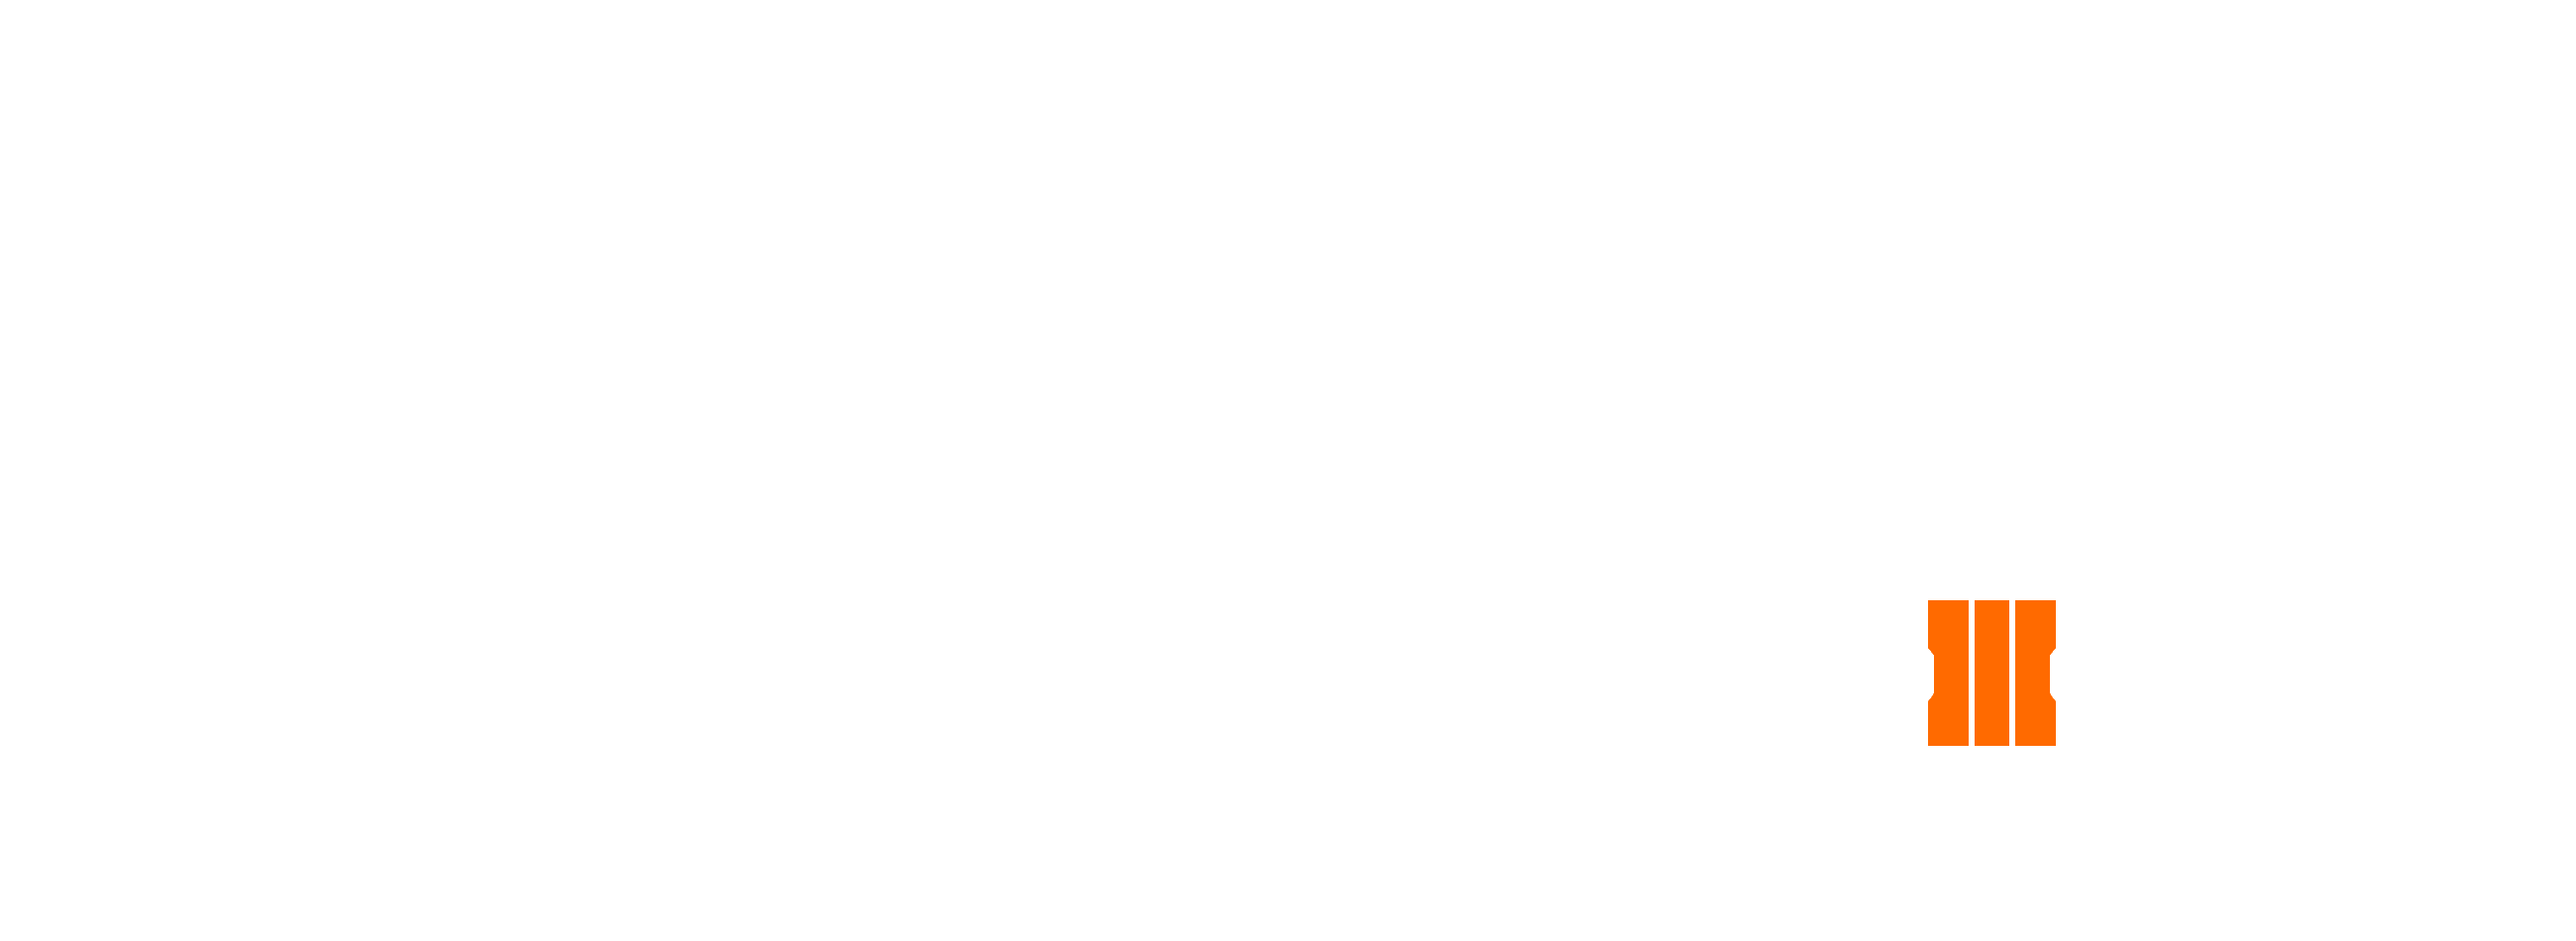 Logo clipart black ops 3 Logos of Ops watch 3